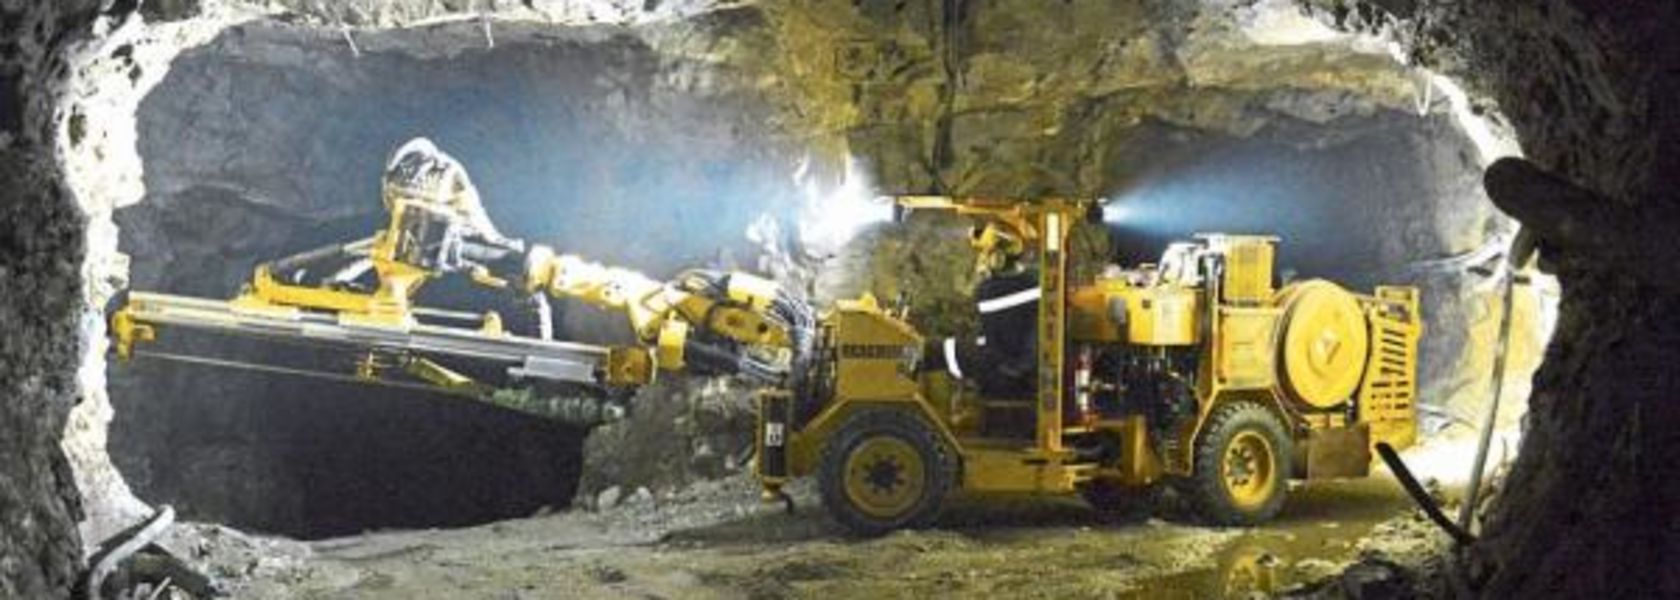 Gran Colombia Gold produces record 218,001oz